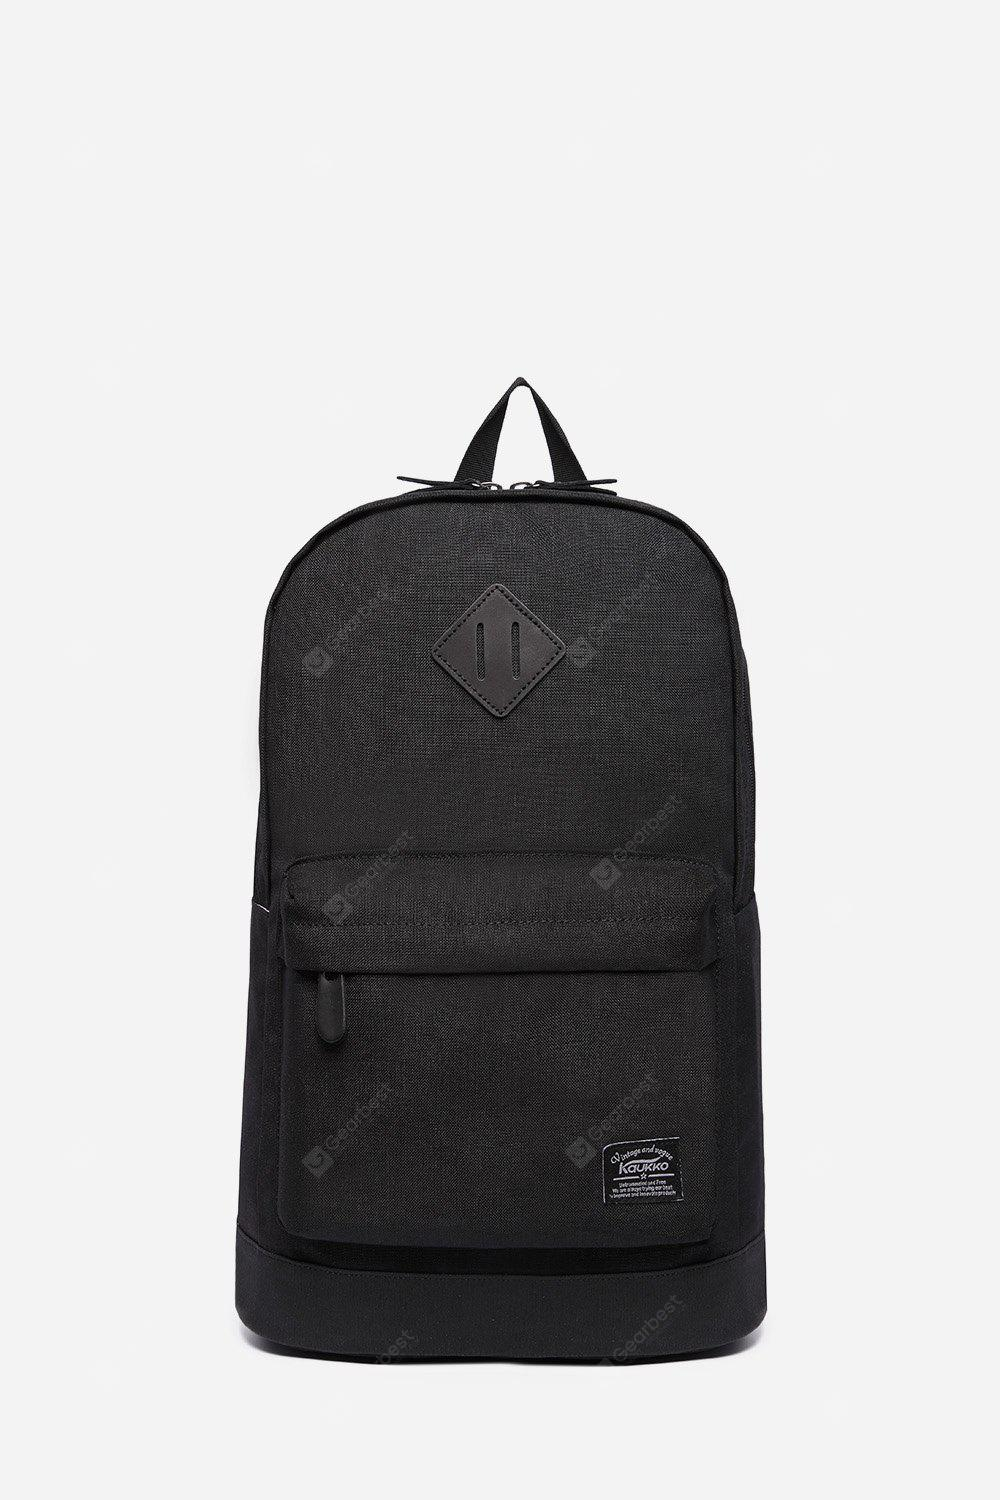 BLACK 18L Water-resistant Trendy Backpack for Men